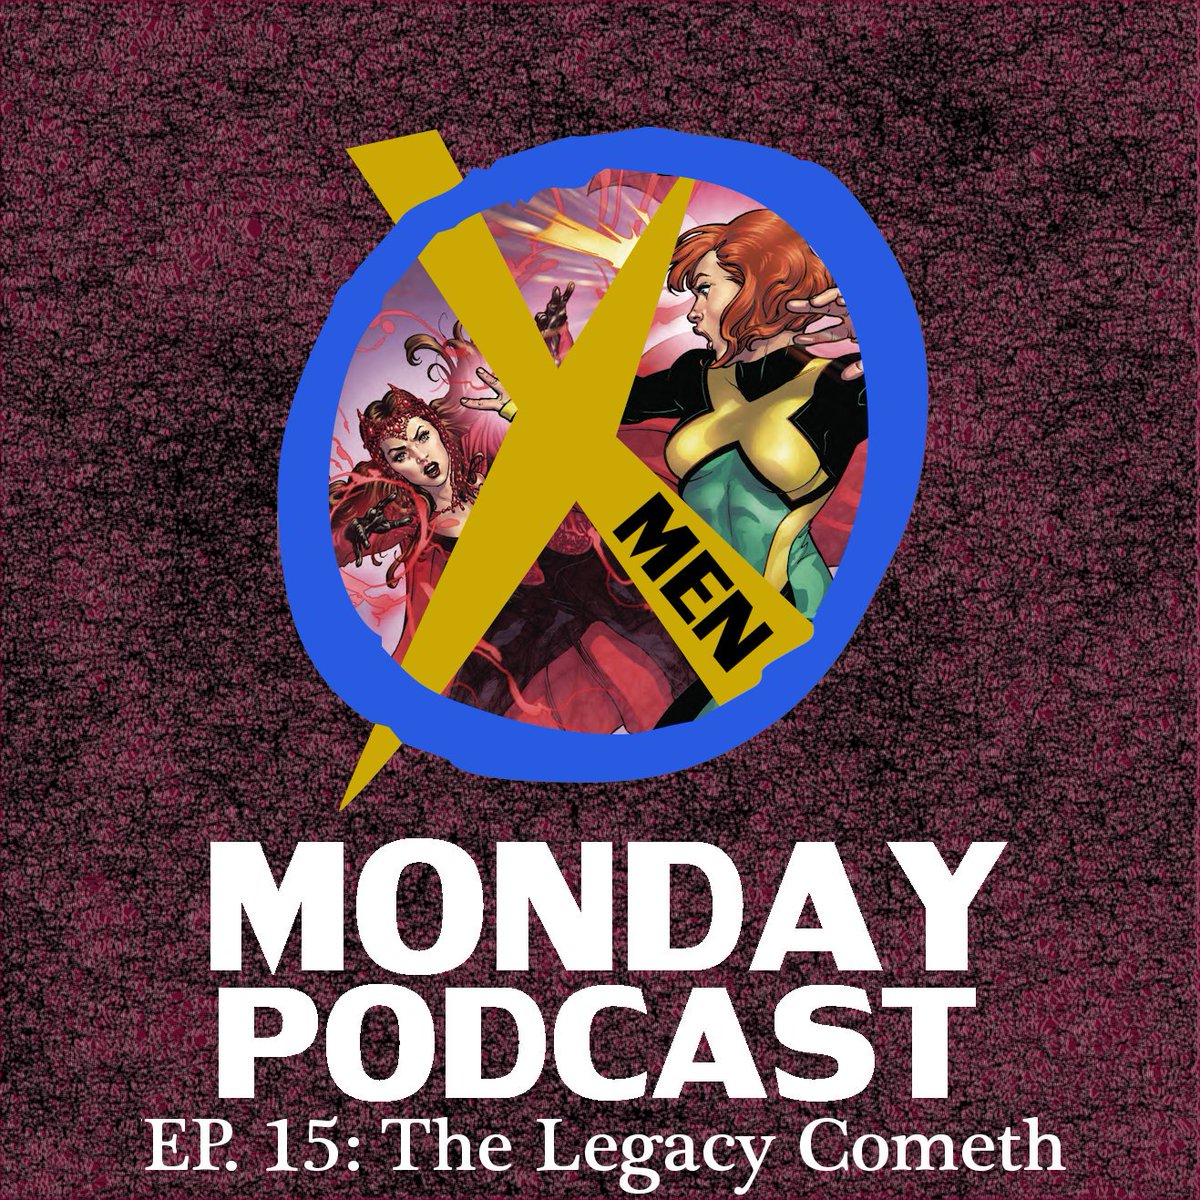 X-Men Monday Episode 15: The Legacy Cometh  Listen/Download:  http:// bit.ly/2wQ0yNf  &nbsp;    #XmenMonday #MarvelLegacy #Xmen #Marvel #JeanGrey<br>http://pic.twitter.com/5G7DOMepKZ